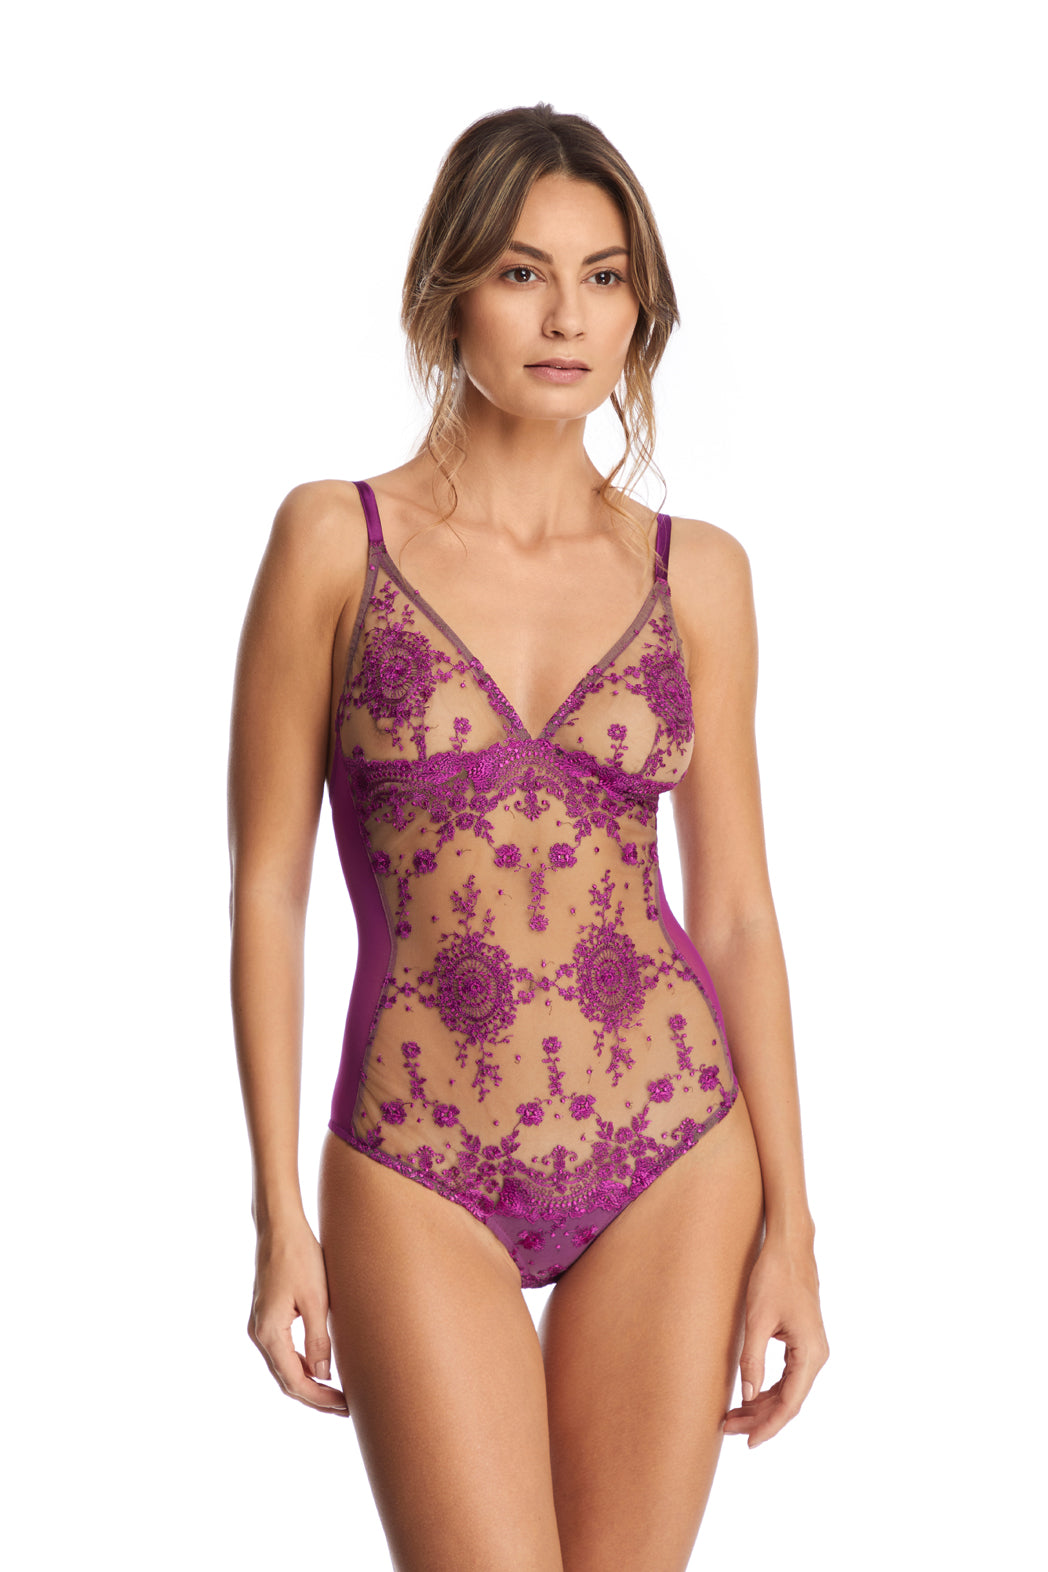 I.D. Sarrieri embroidered triangle bodysuit